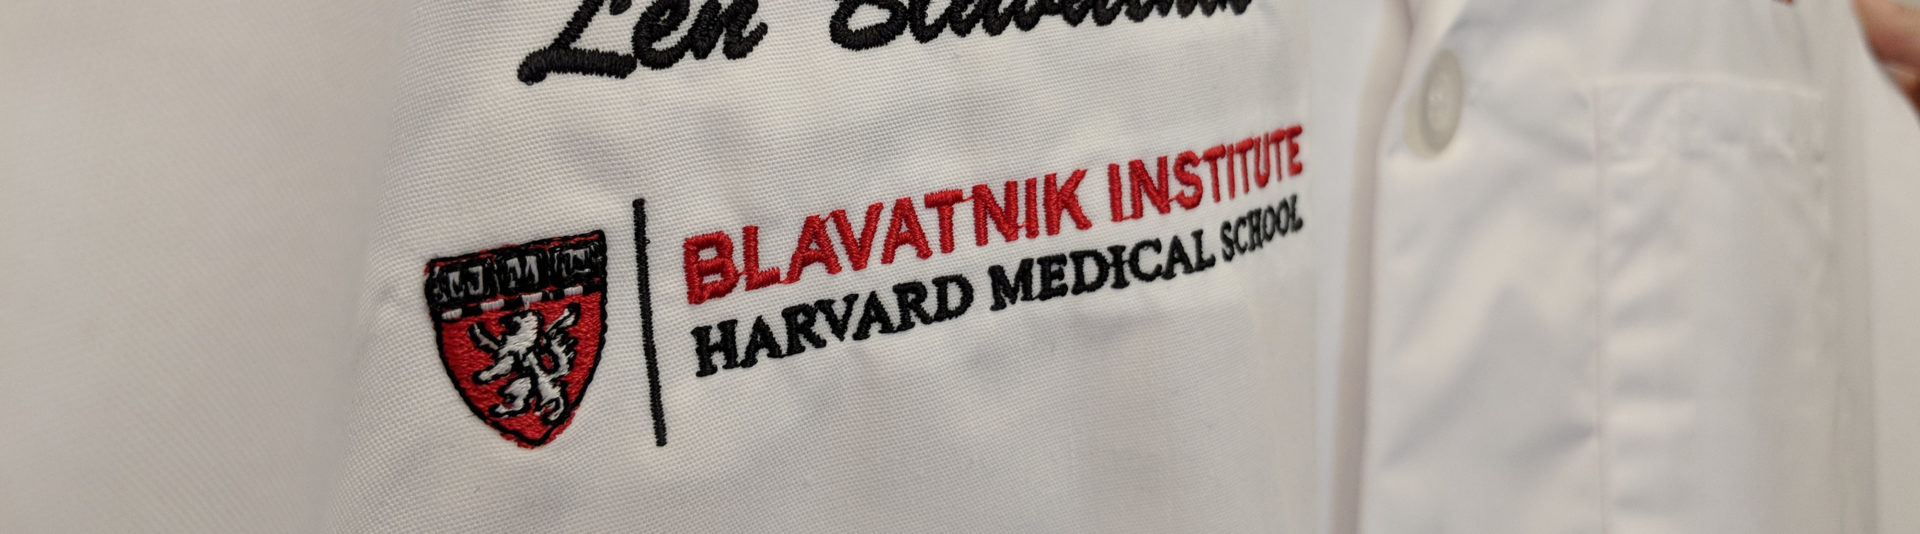 Blavatnik Family Foundation donation to the Harvard Medical School